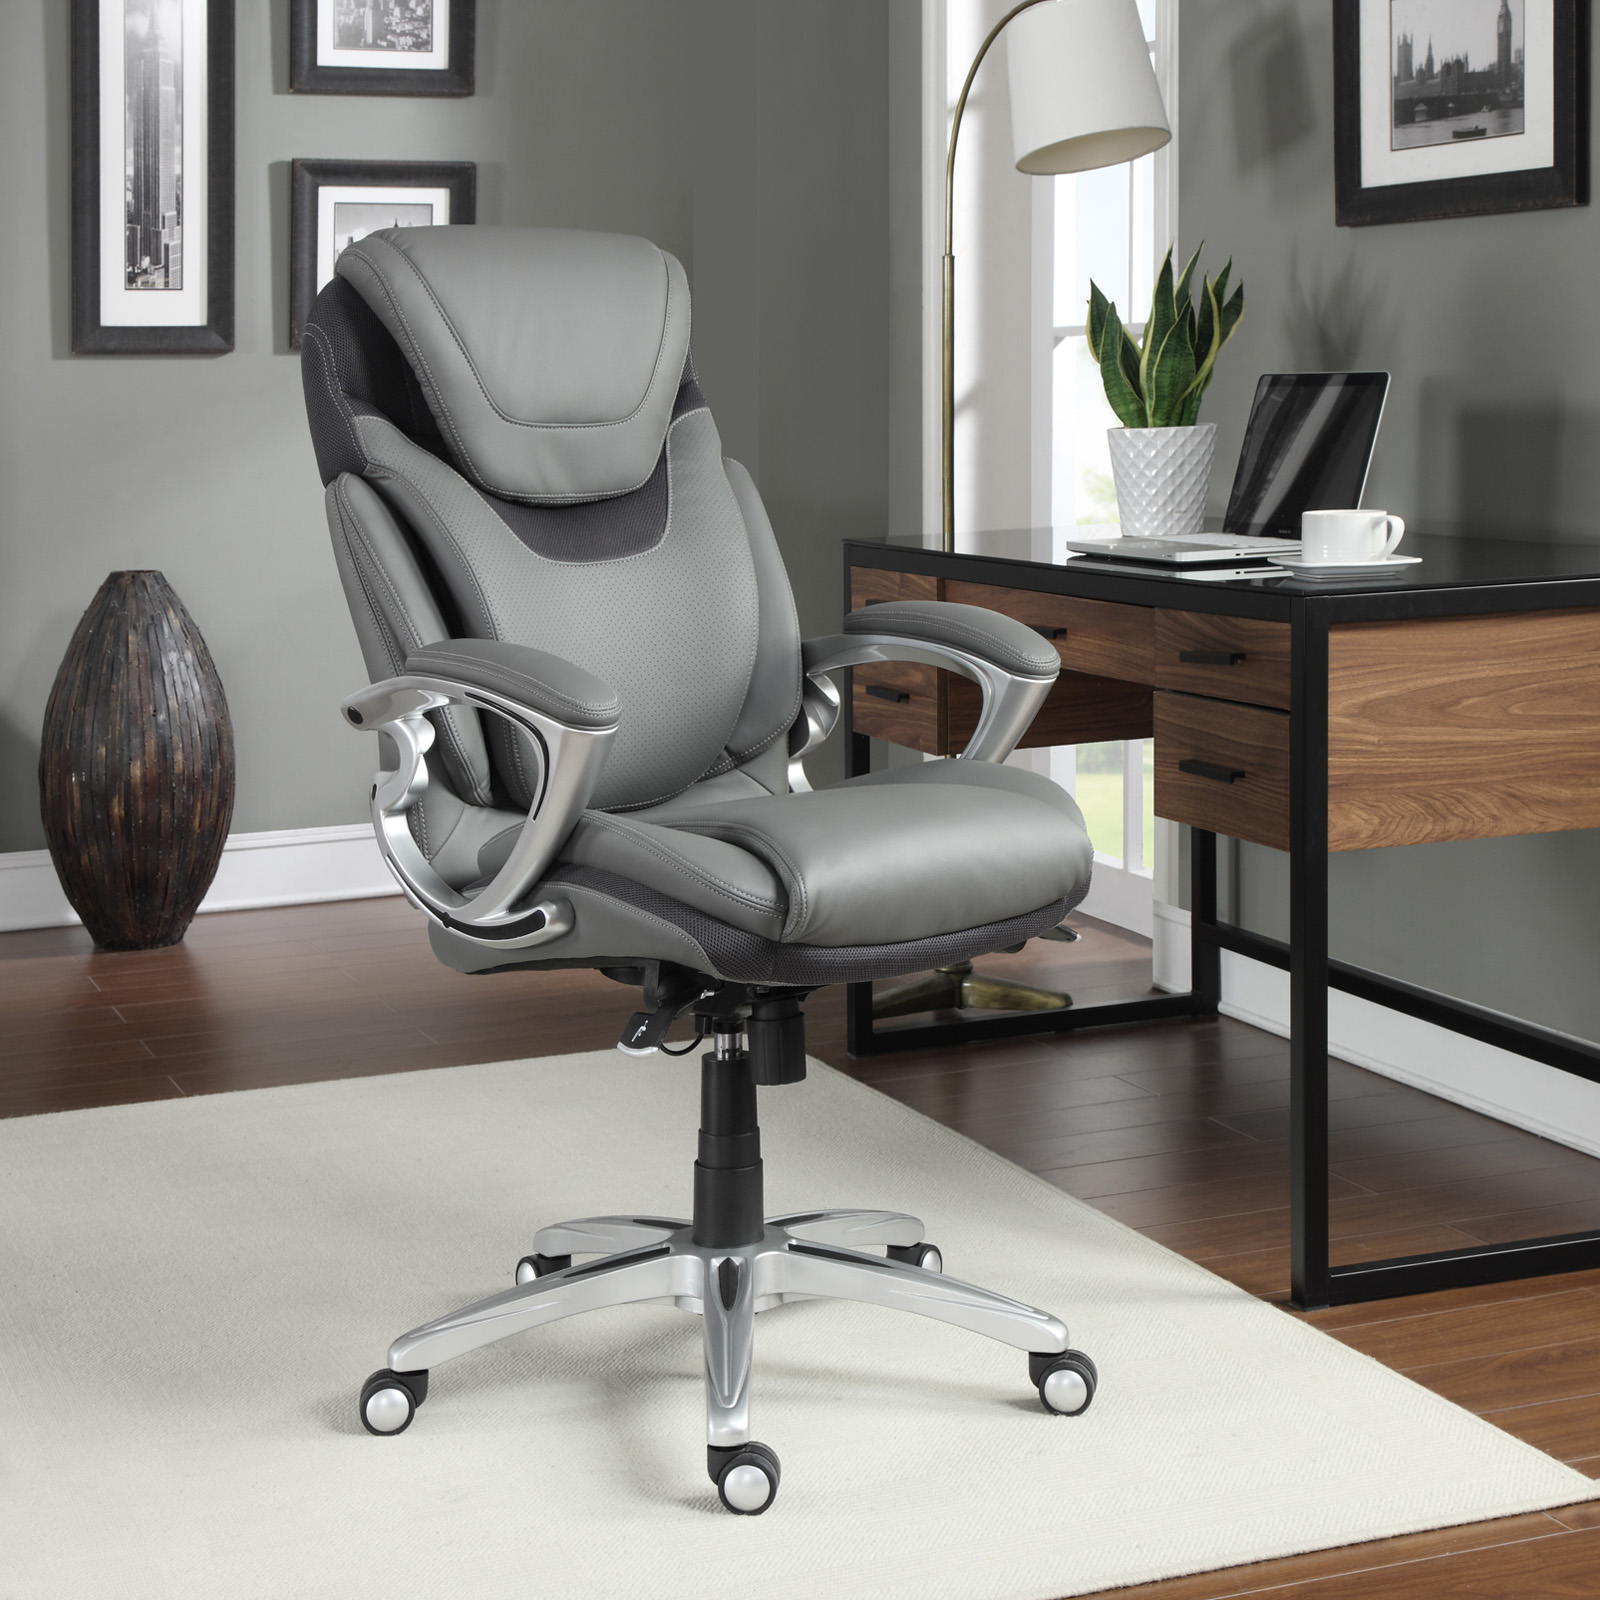 Serta Air Health Wellness Eco Friendly Bonded Leather Executive Office Chair Hayneedle